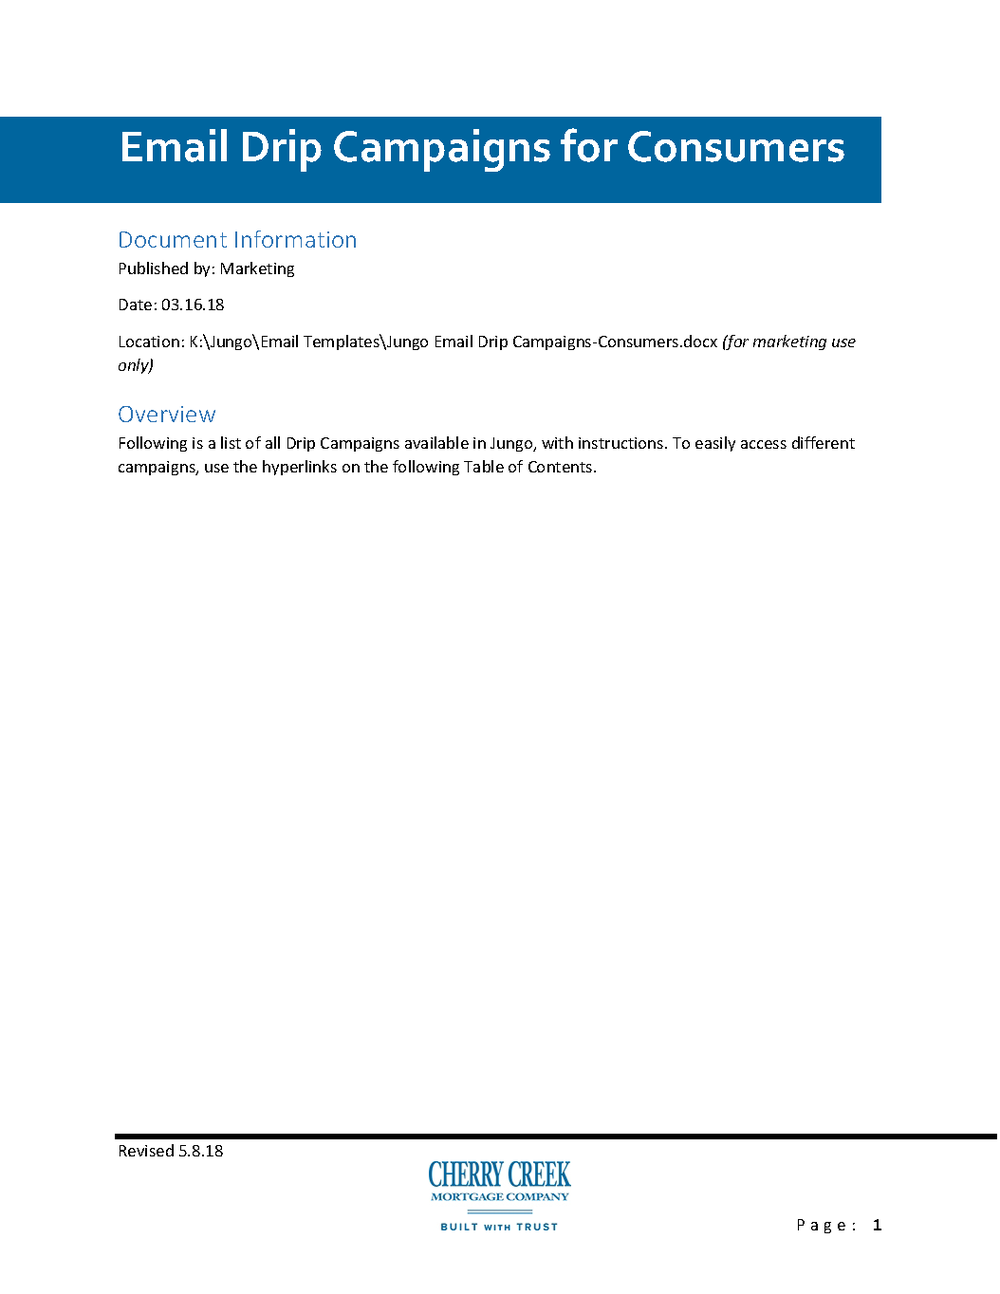 Jungo_Email_Drip_Campaigns-Consumers_D1O6plI_Page_001.png